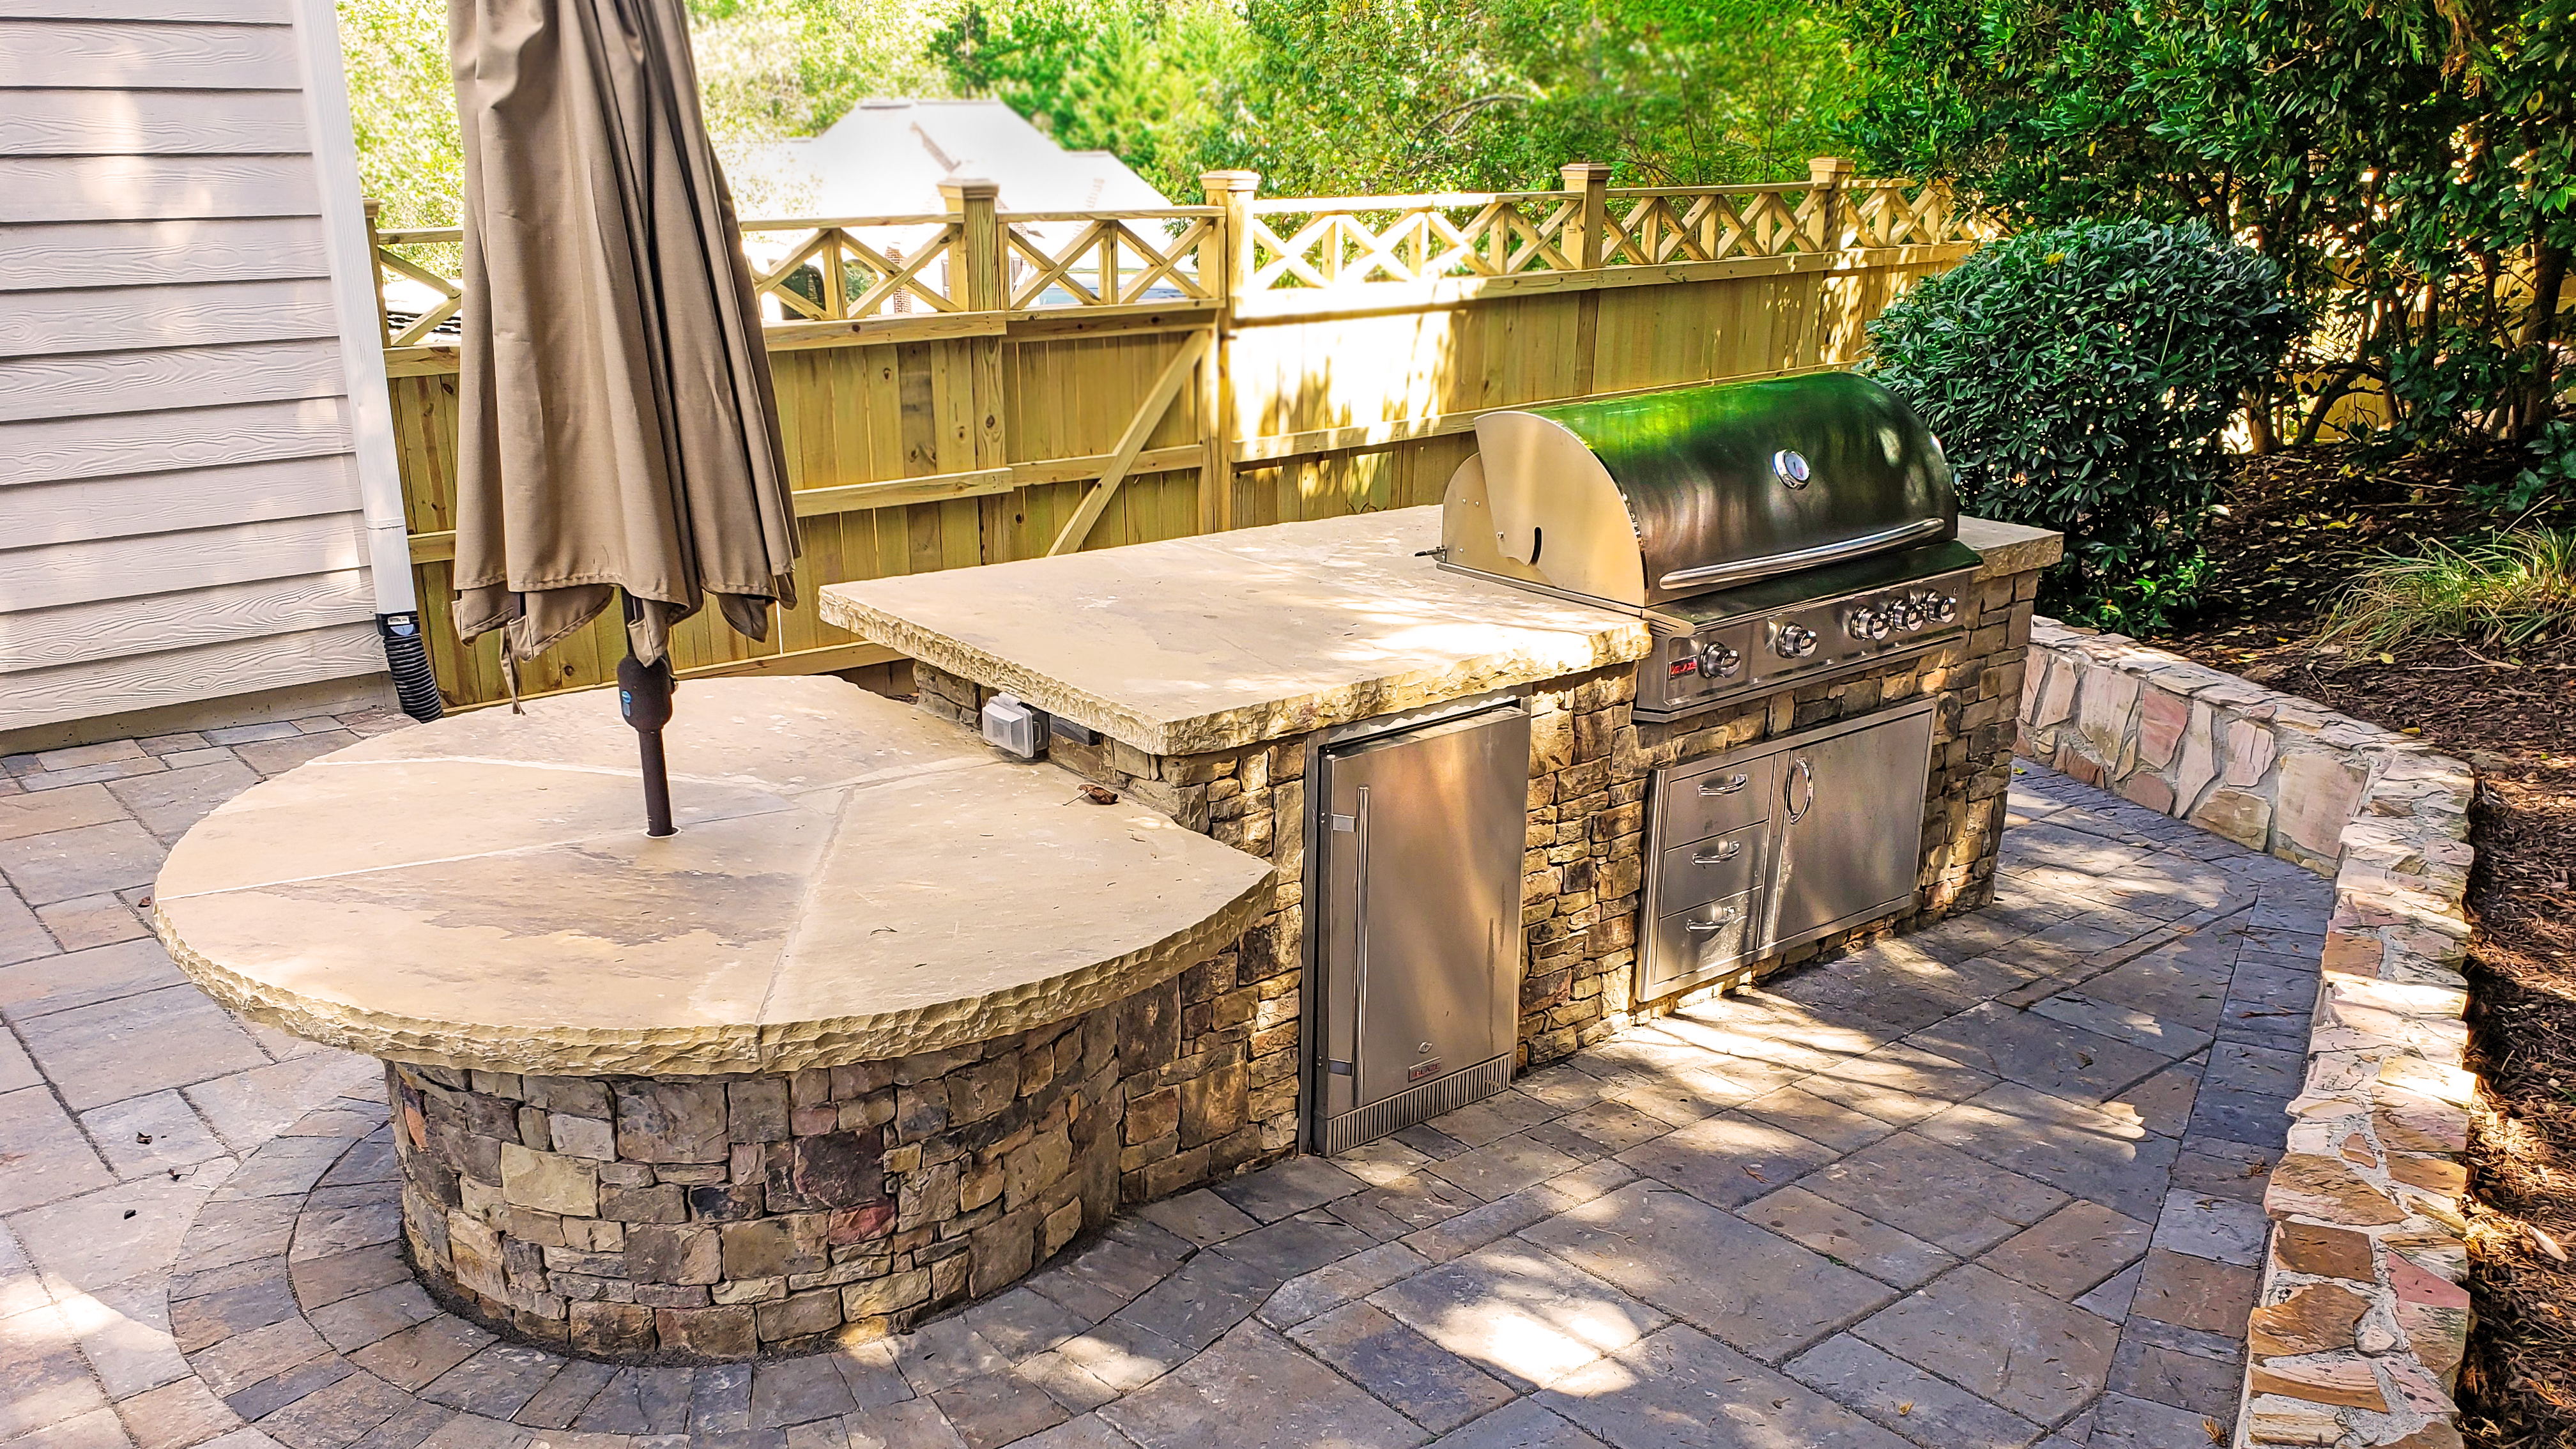 stone outdoor kitchen with steel grill and wooden privacy fence